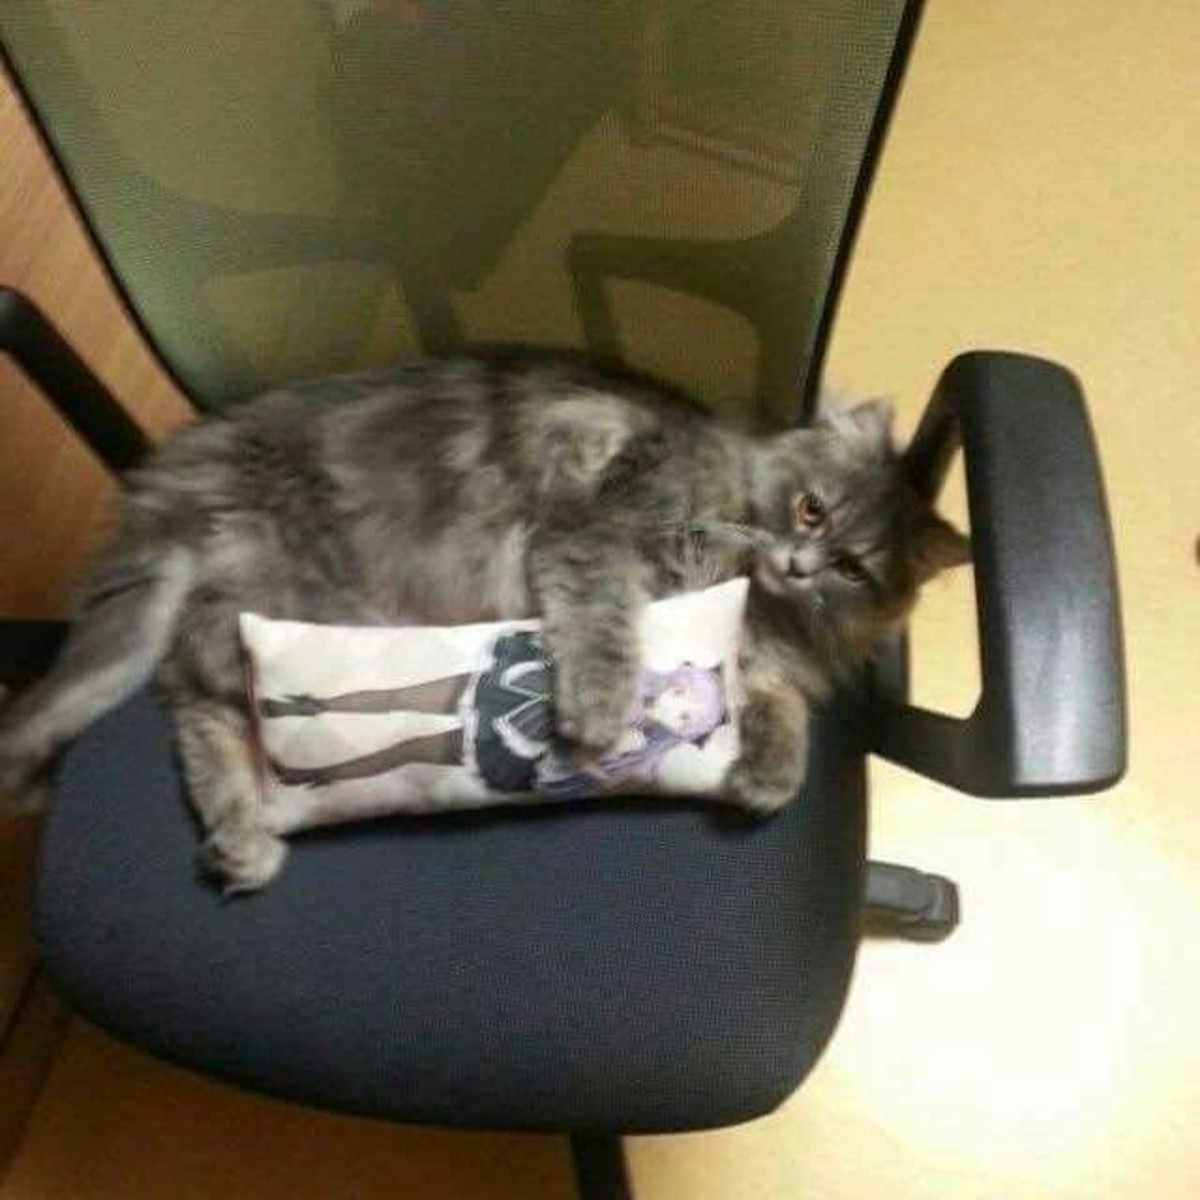 The average FJ'ers cat. .. what do you mean